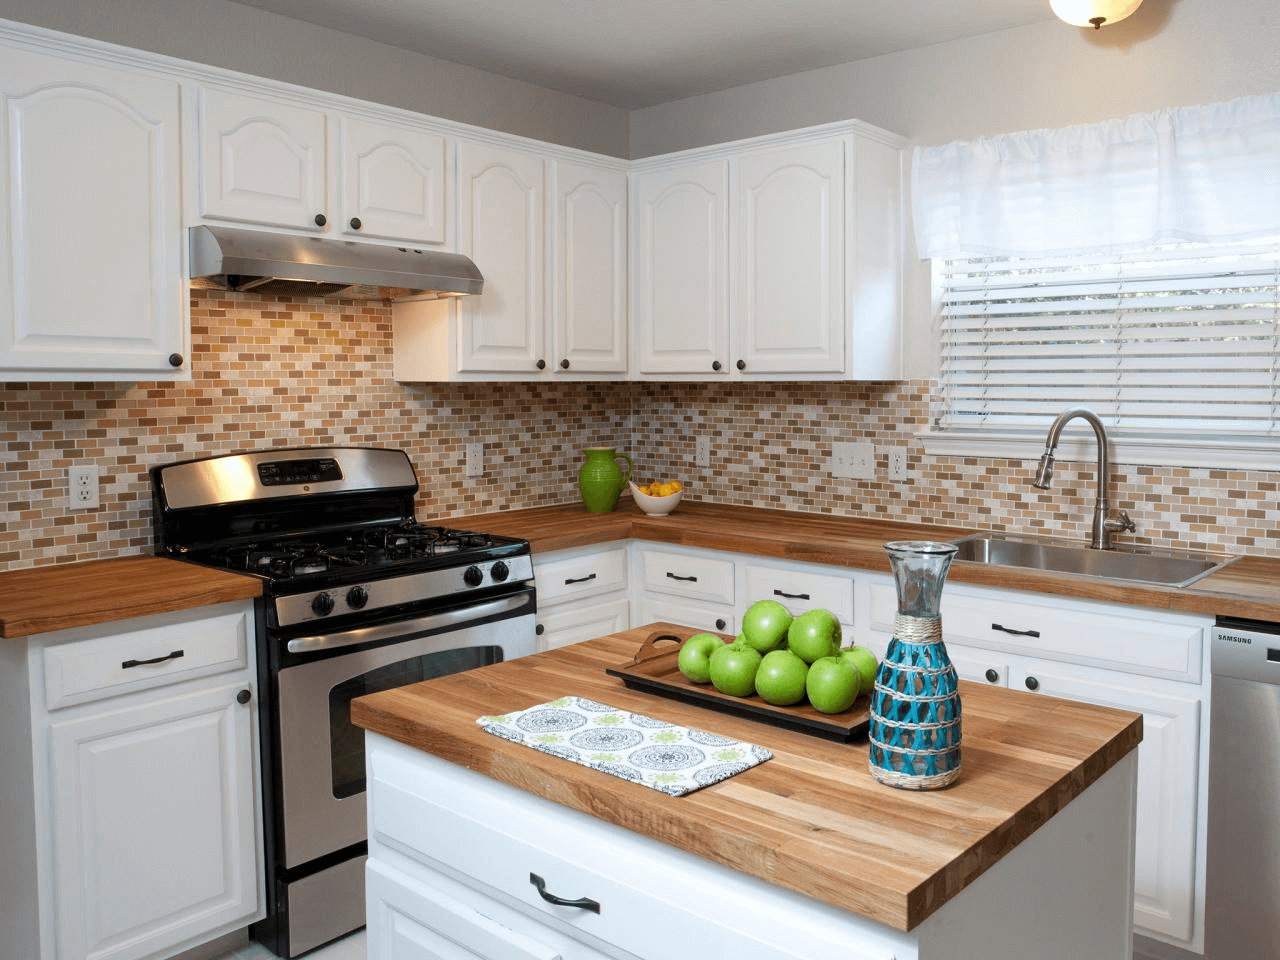 12 Small Kitchen Remodel on a Budget | Small Kitchen Guides